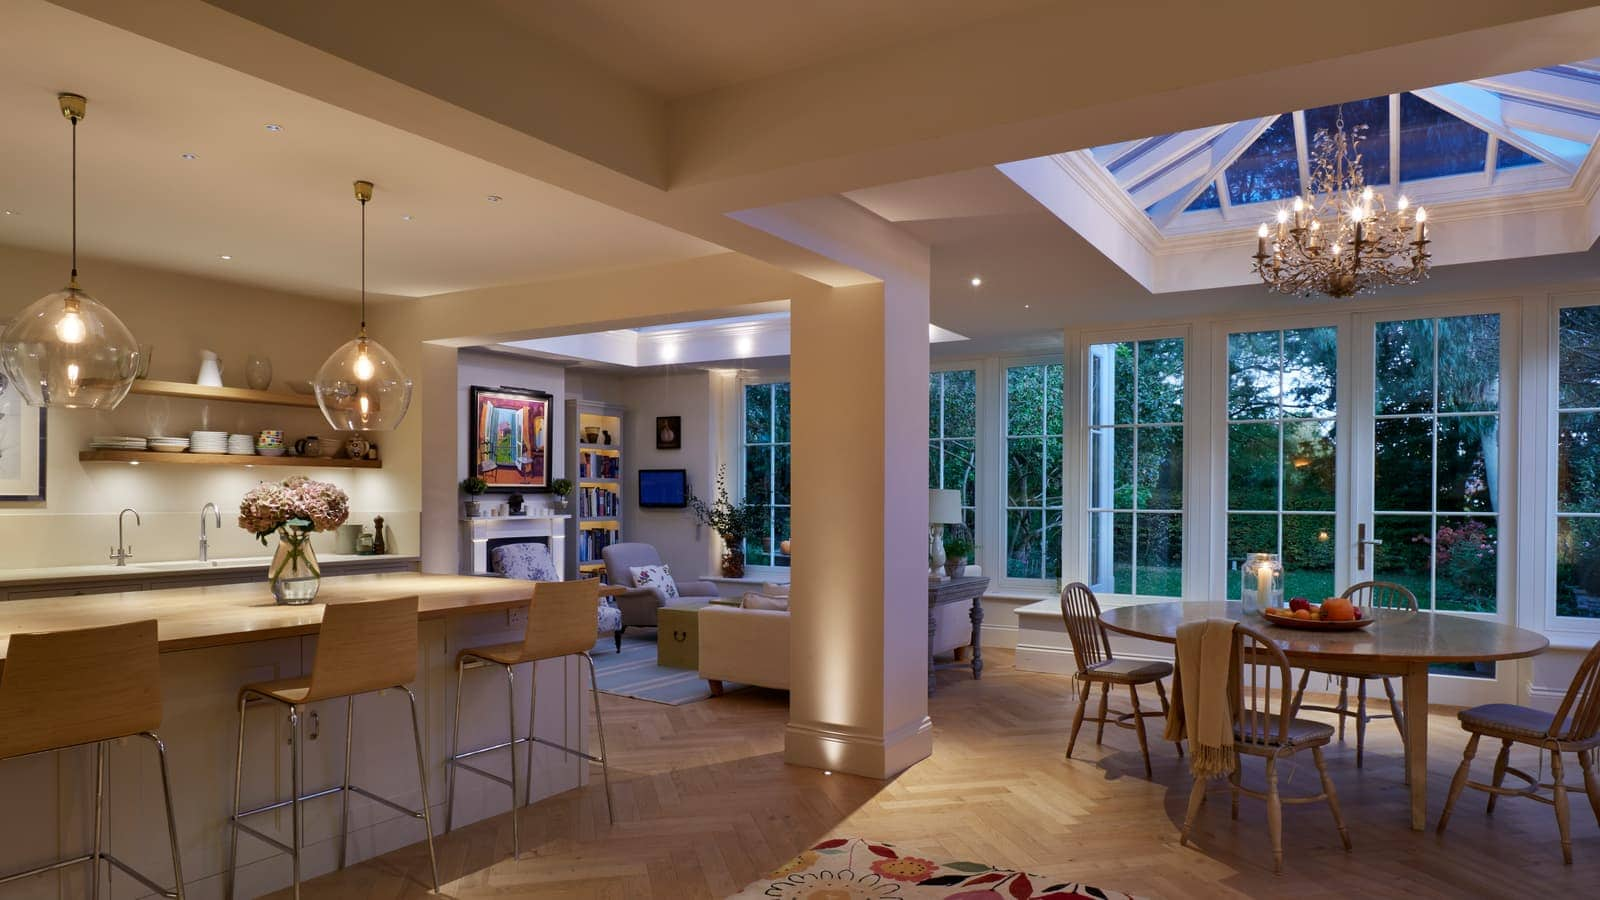 Incredible open plan space with kitchen and dining area